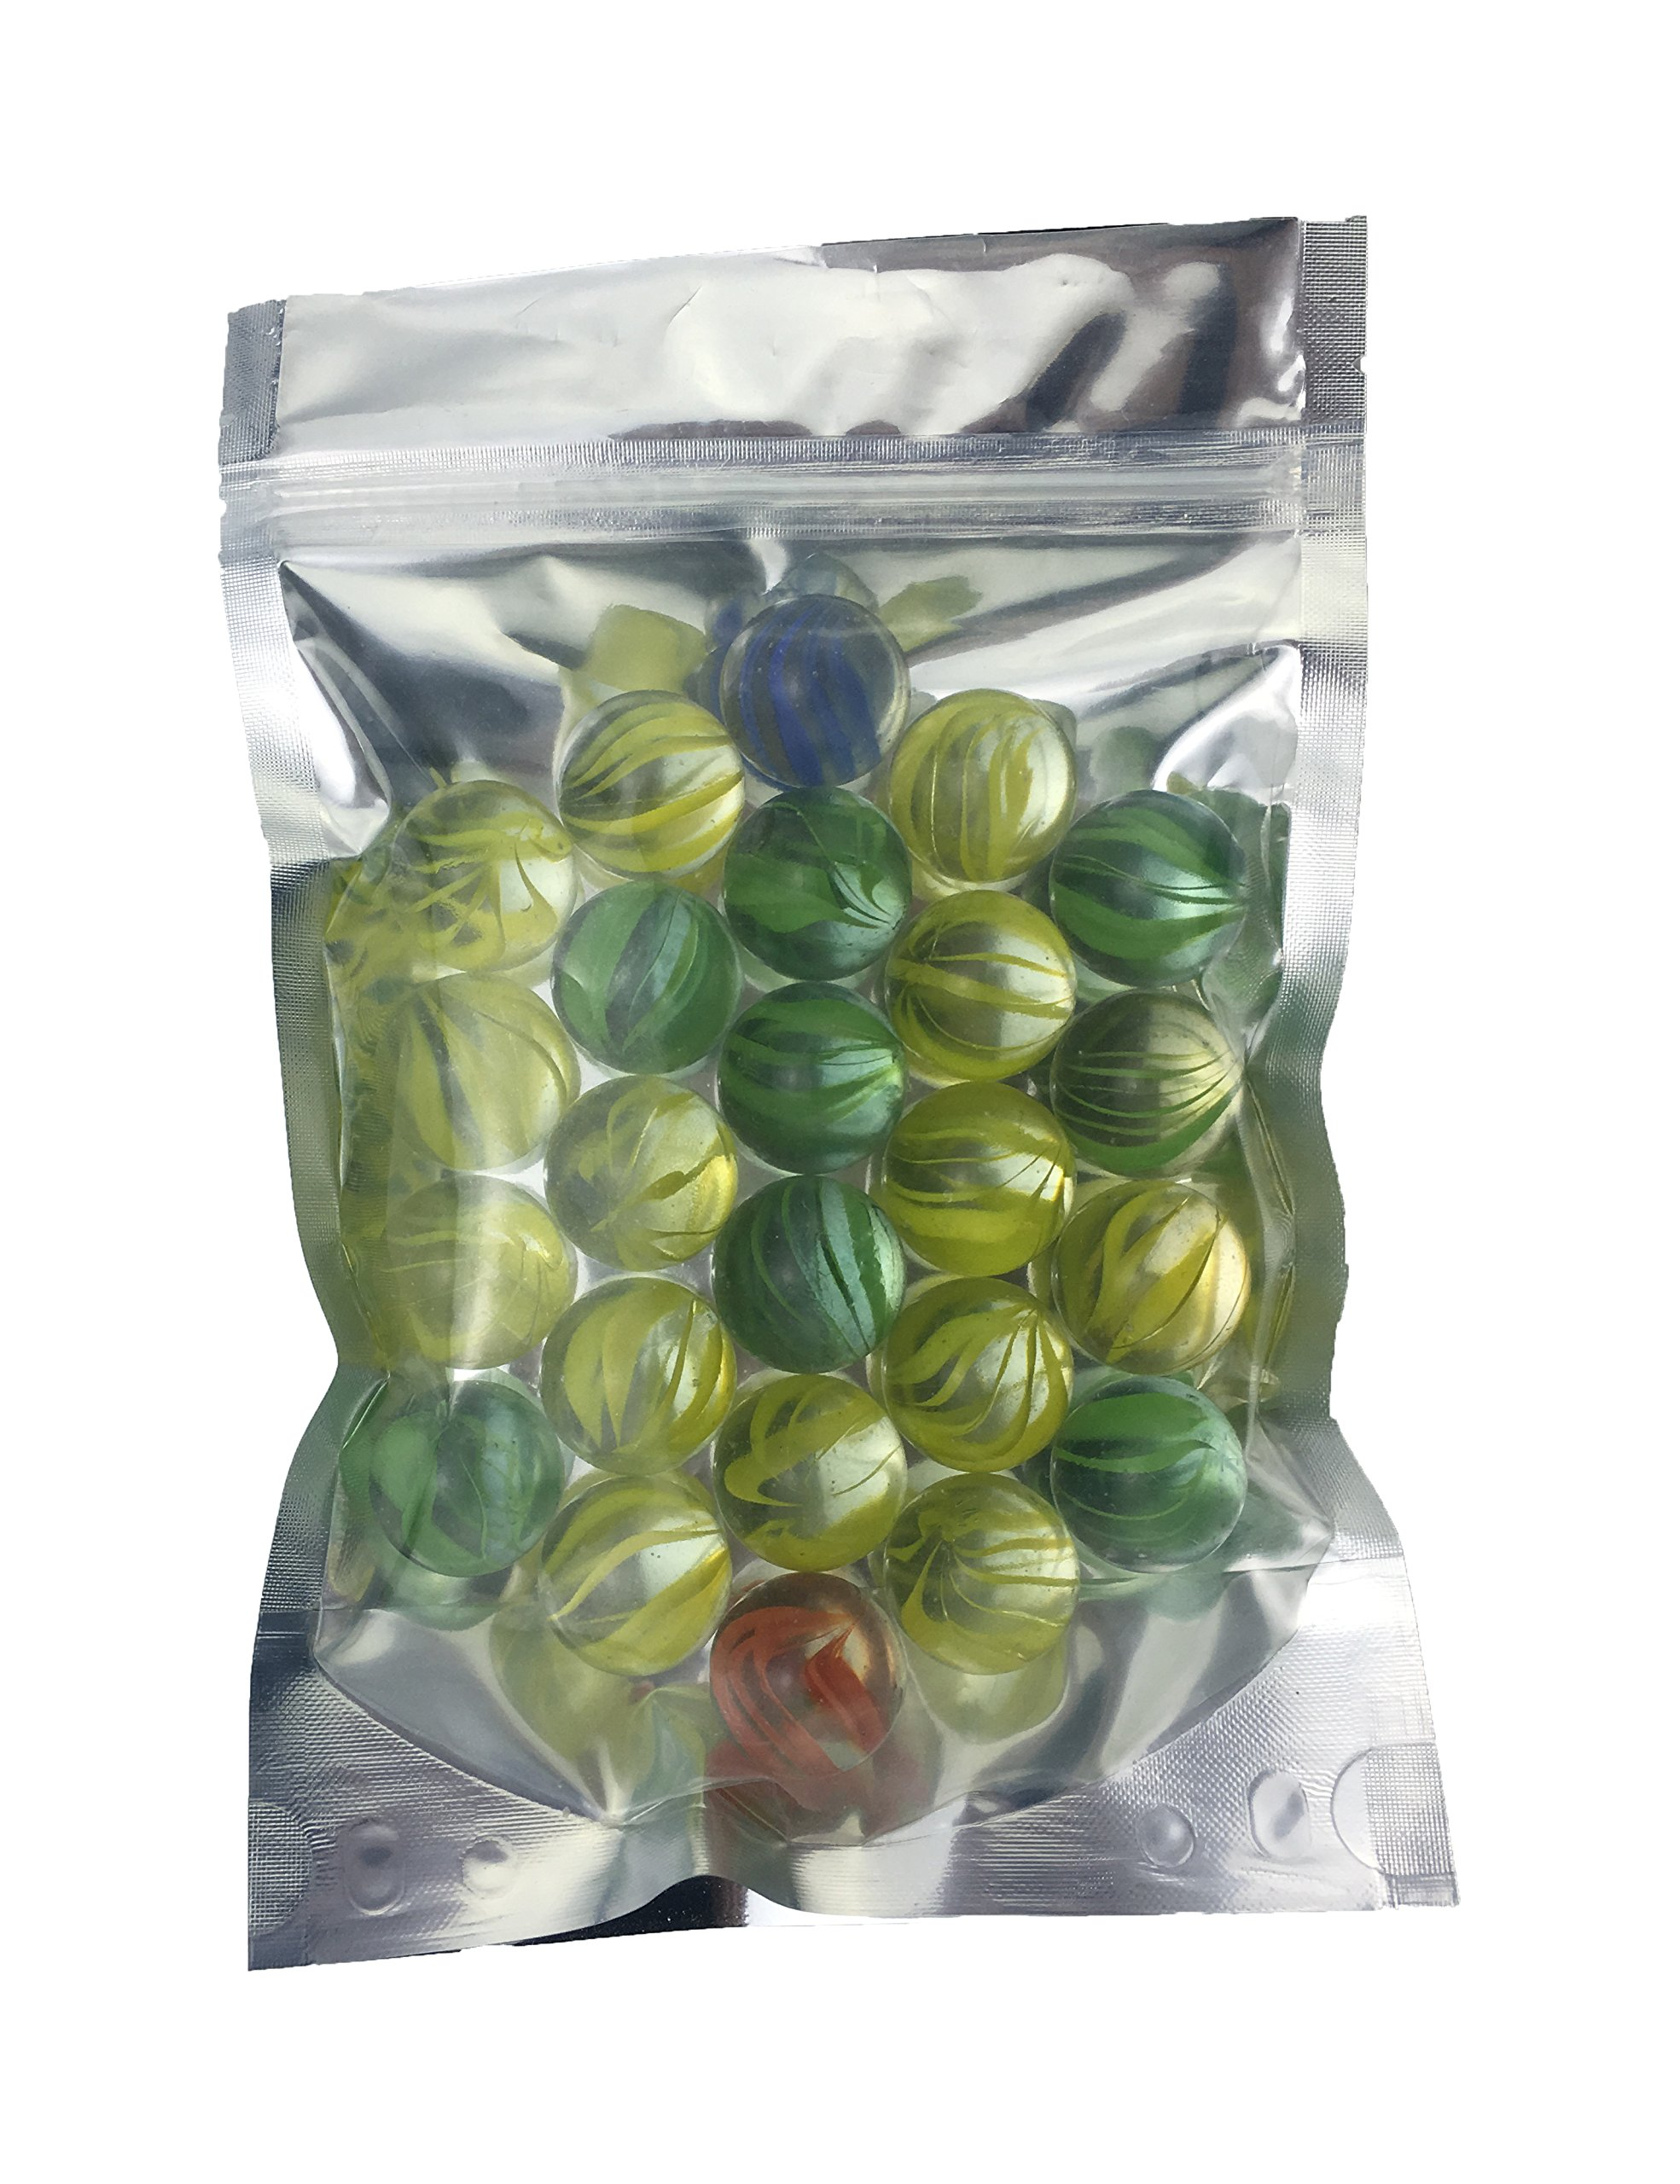 HoneyToys Set of 24 Shooter Marbles 1'' Mega Marbles in Bulk Glass Marbles by HoneyToys (Image #4)